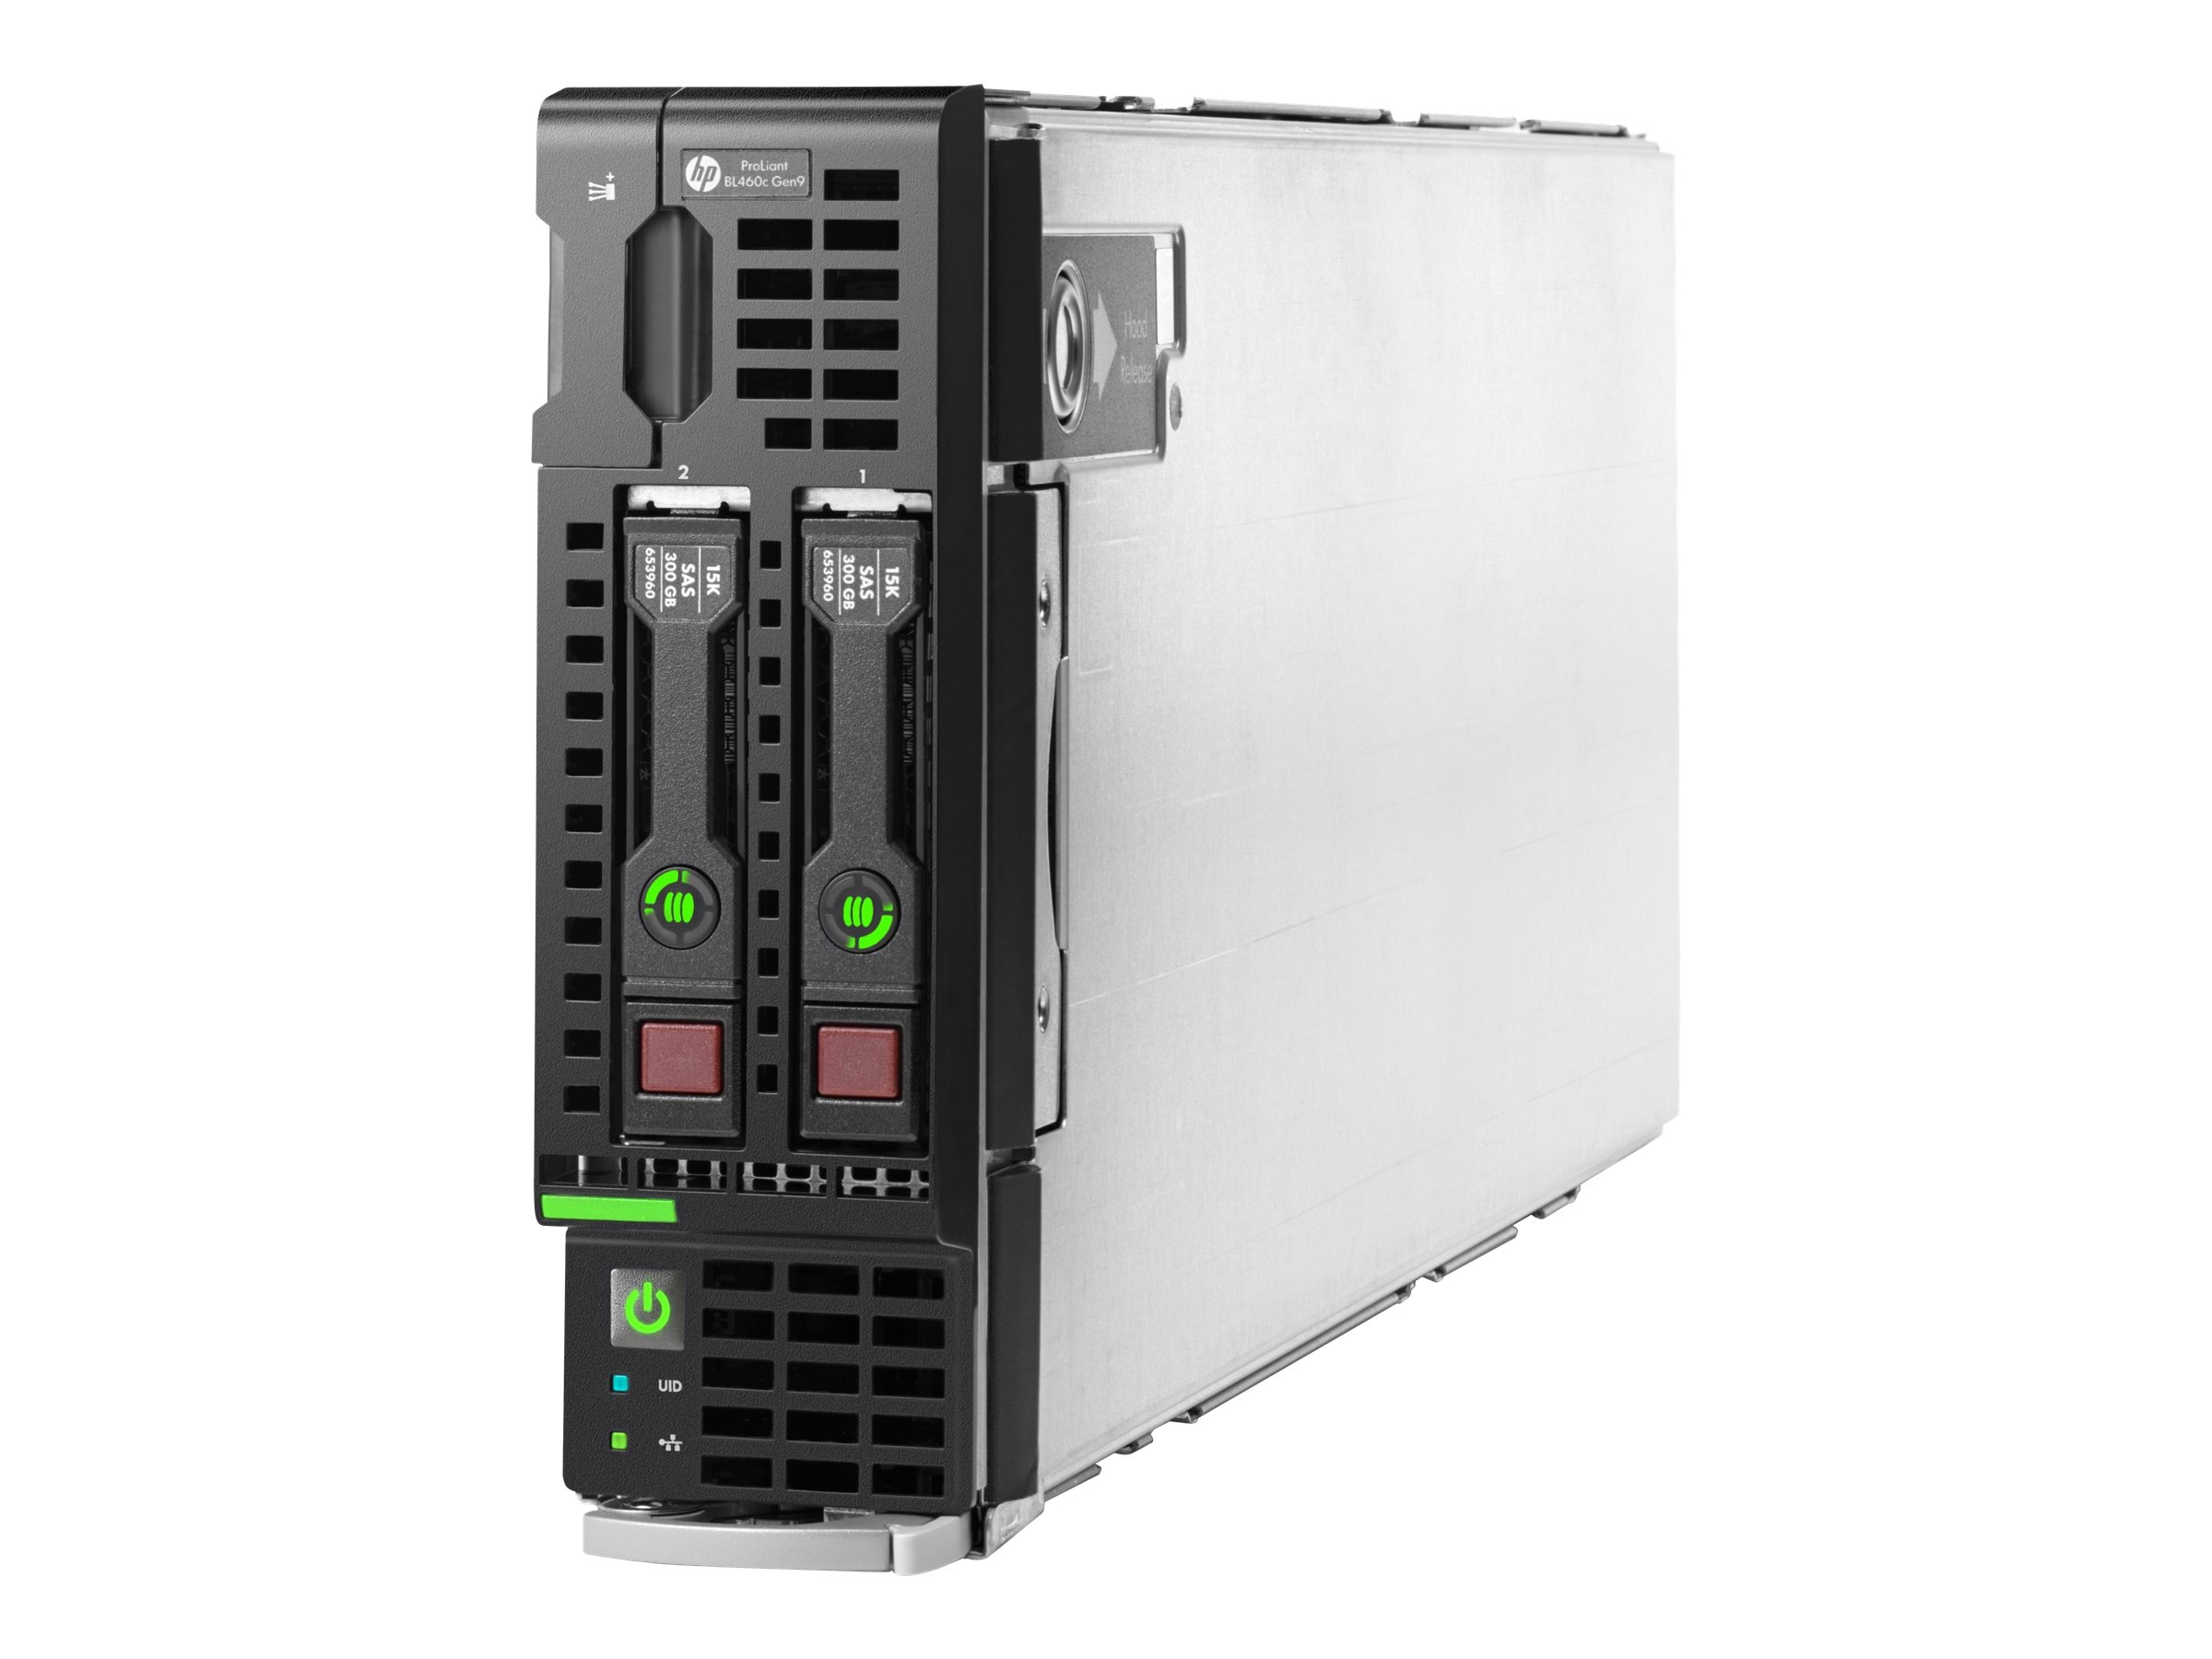 Hewlett Packard Enterprise 779803-S01 Image 1